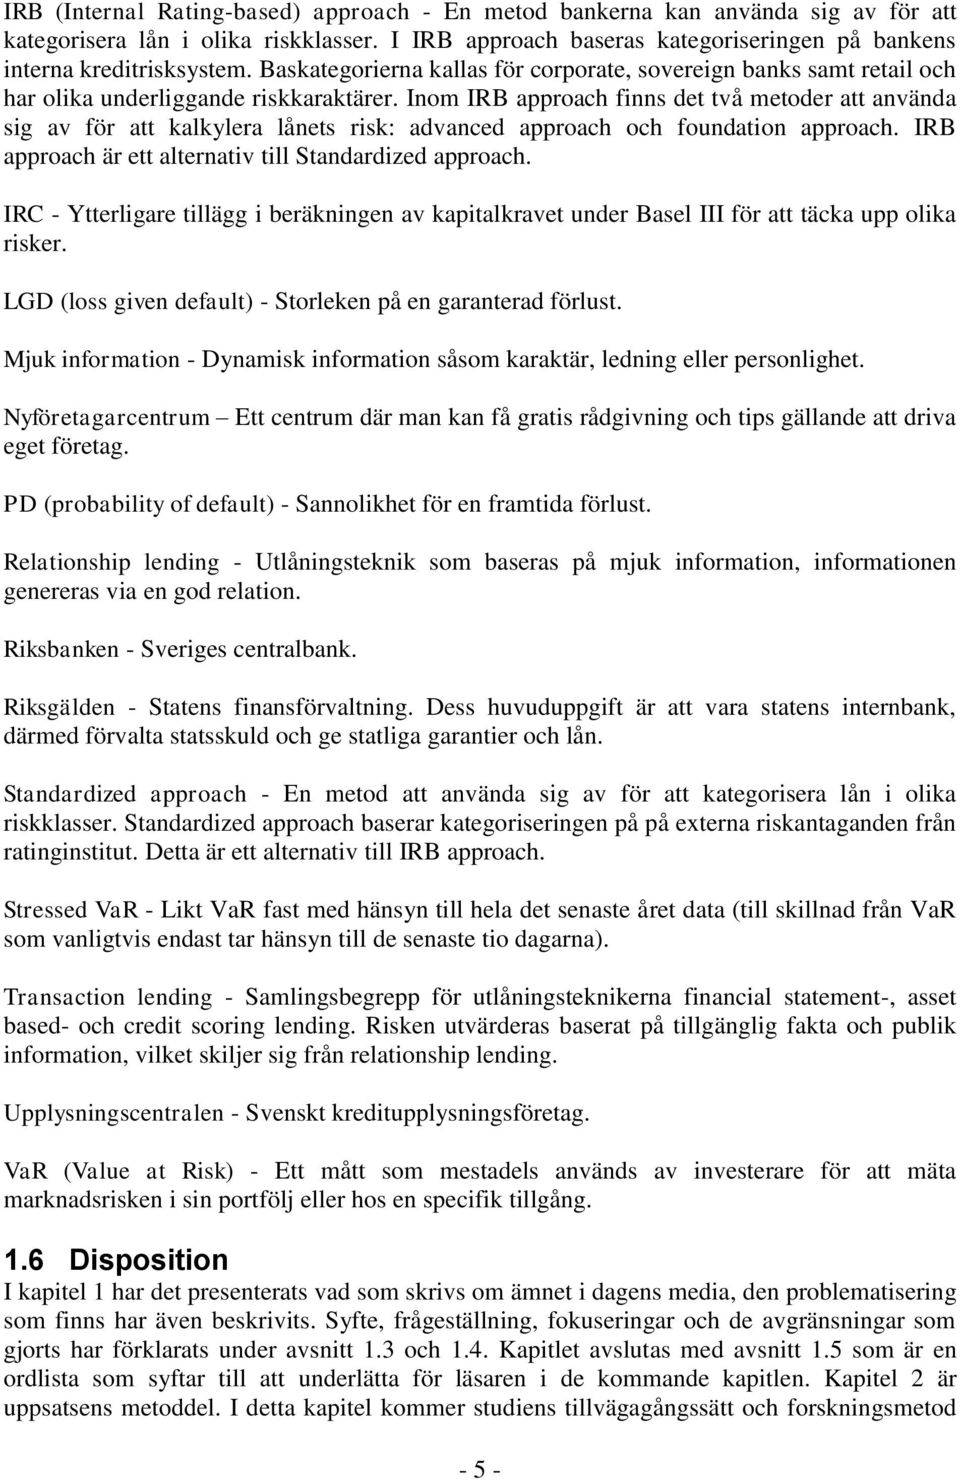 Inom IRB approach finns det två metoder att använda sig av för att kalkylera lånets risk: advanced approach och foundation approach. IRB approach är ett alternativ till Standardized approach.